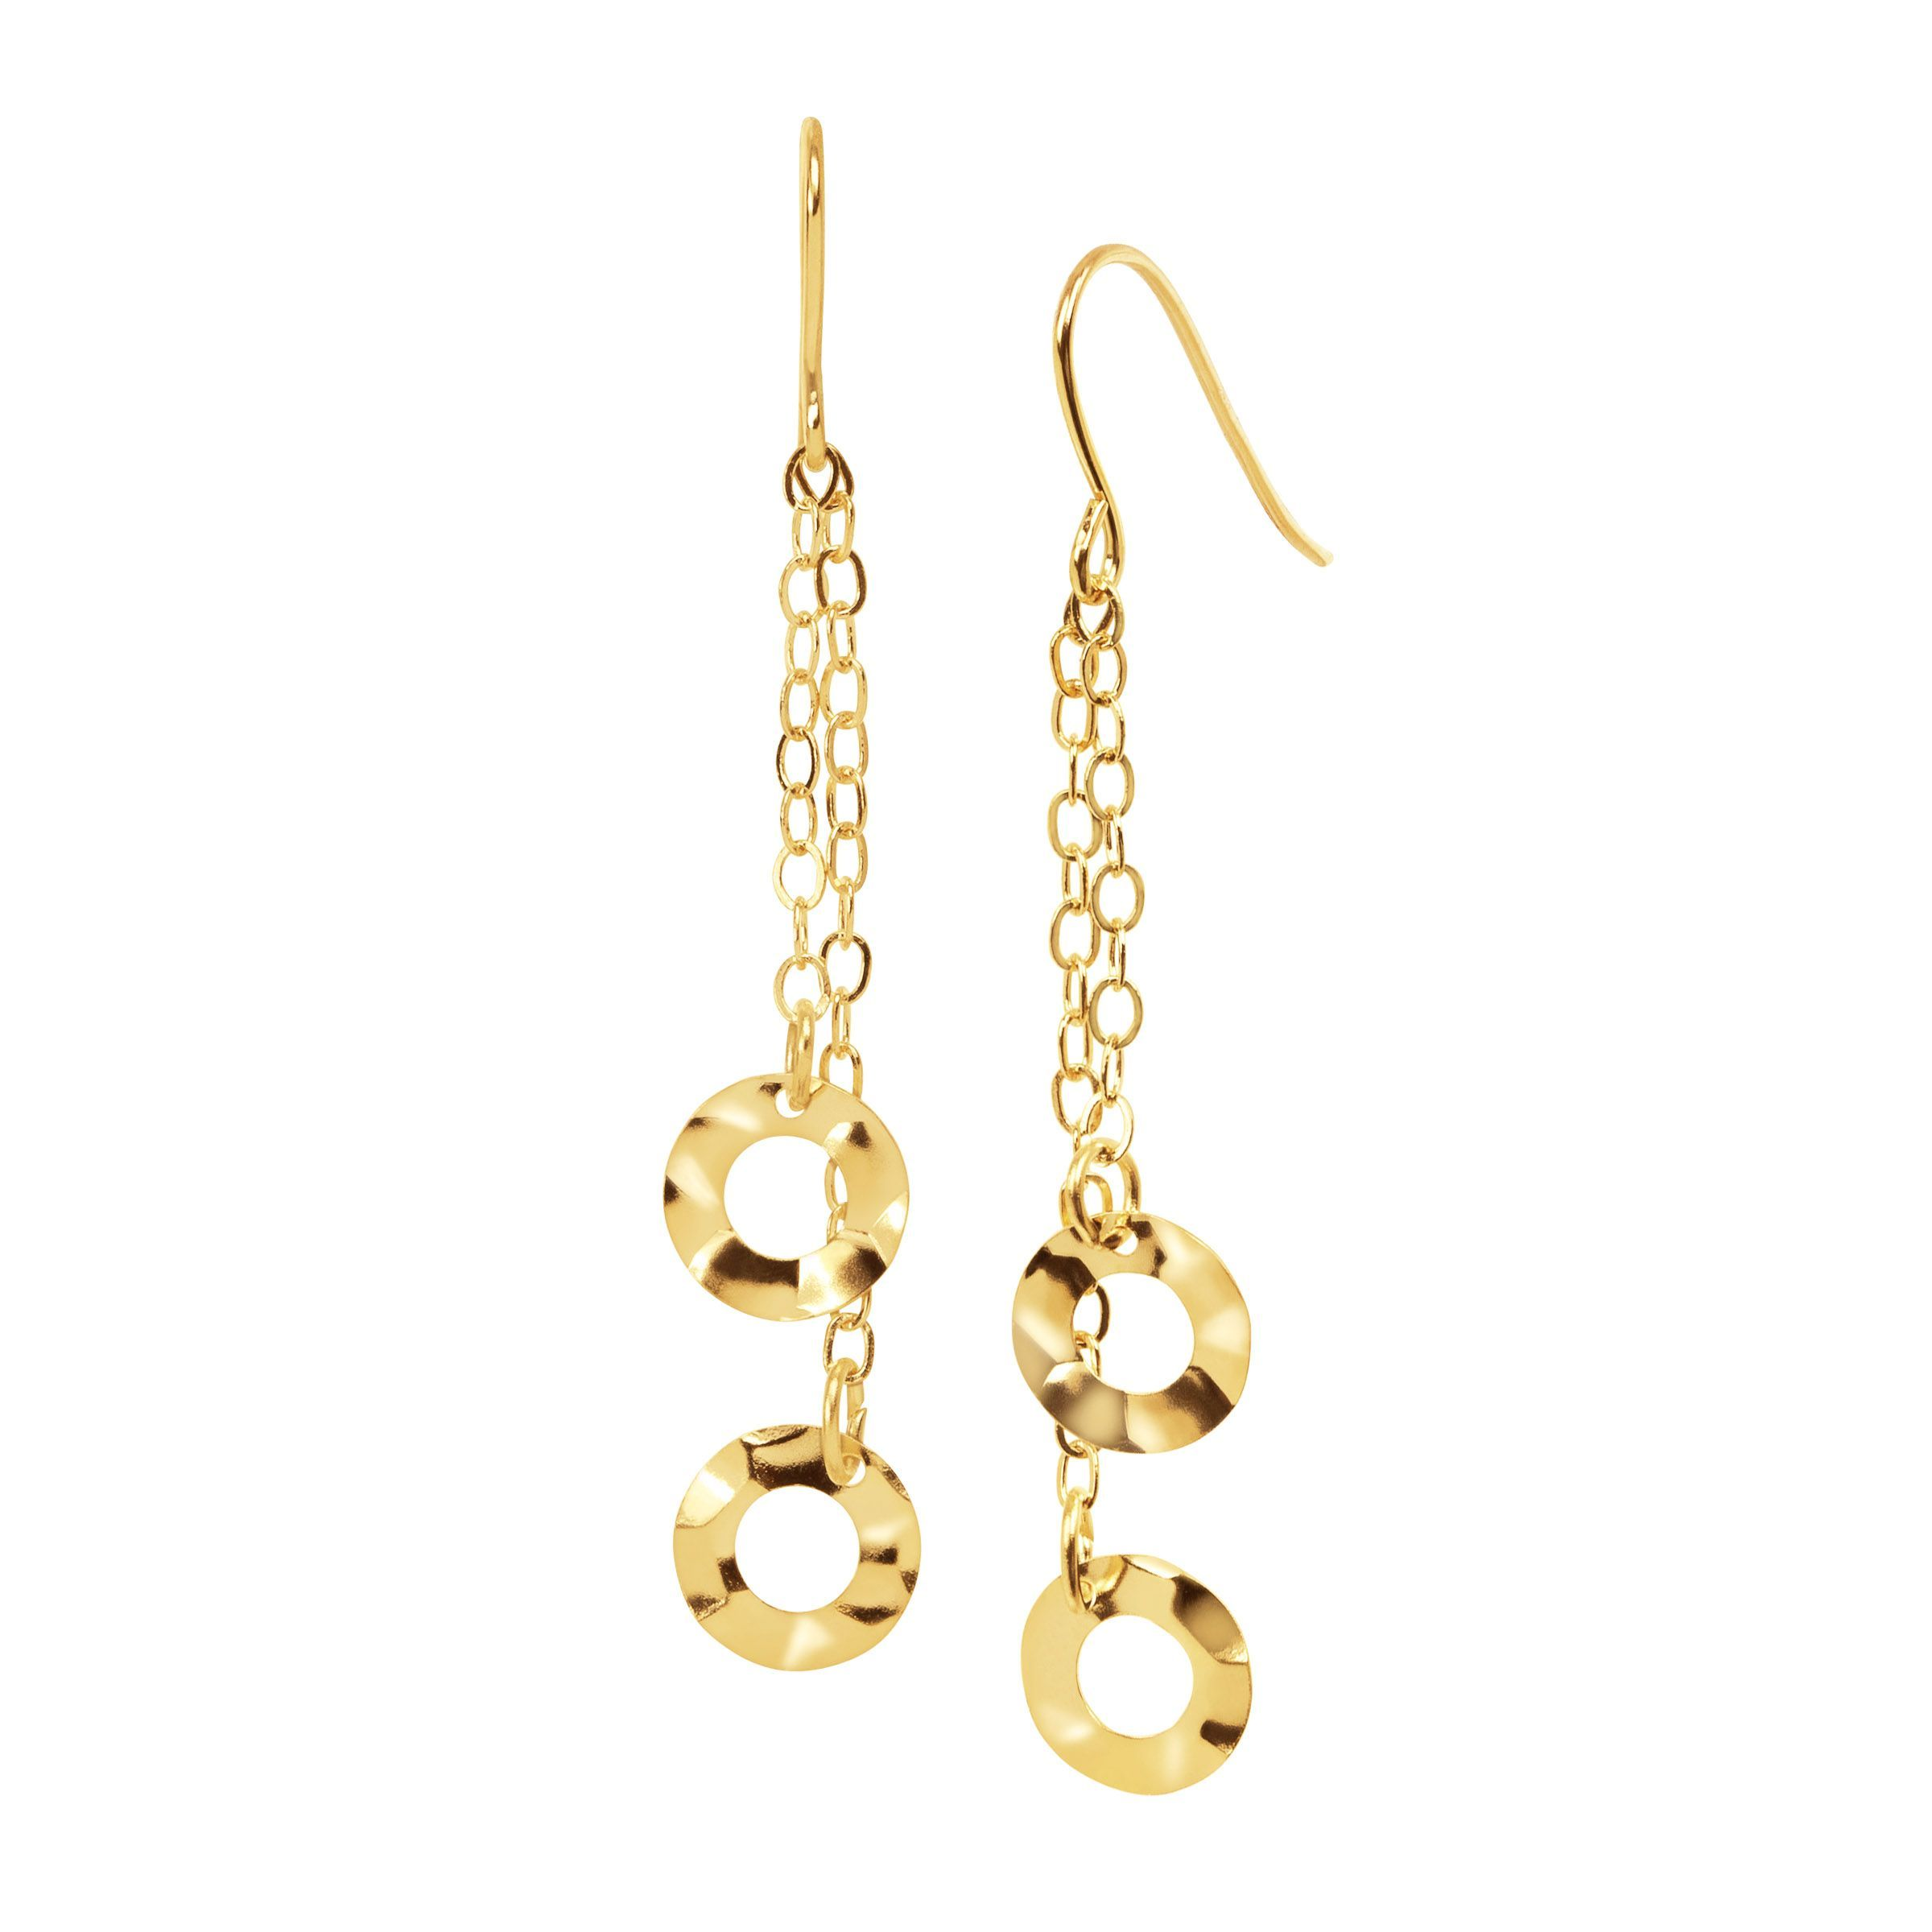 Eternity Gold Hammered Circle Chain Drop Earrings In 14k